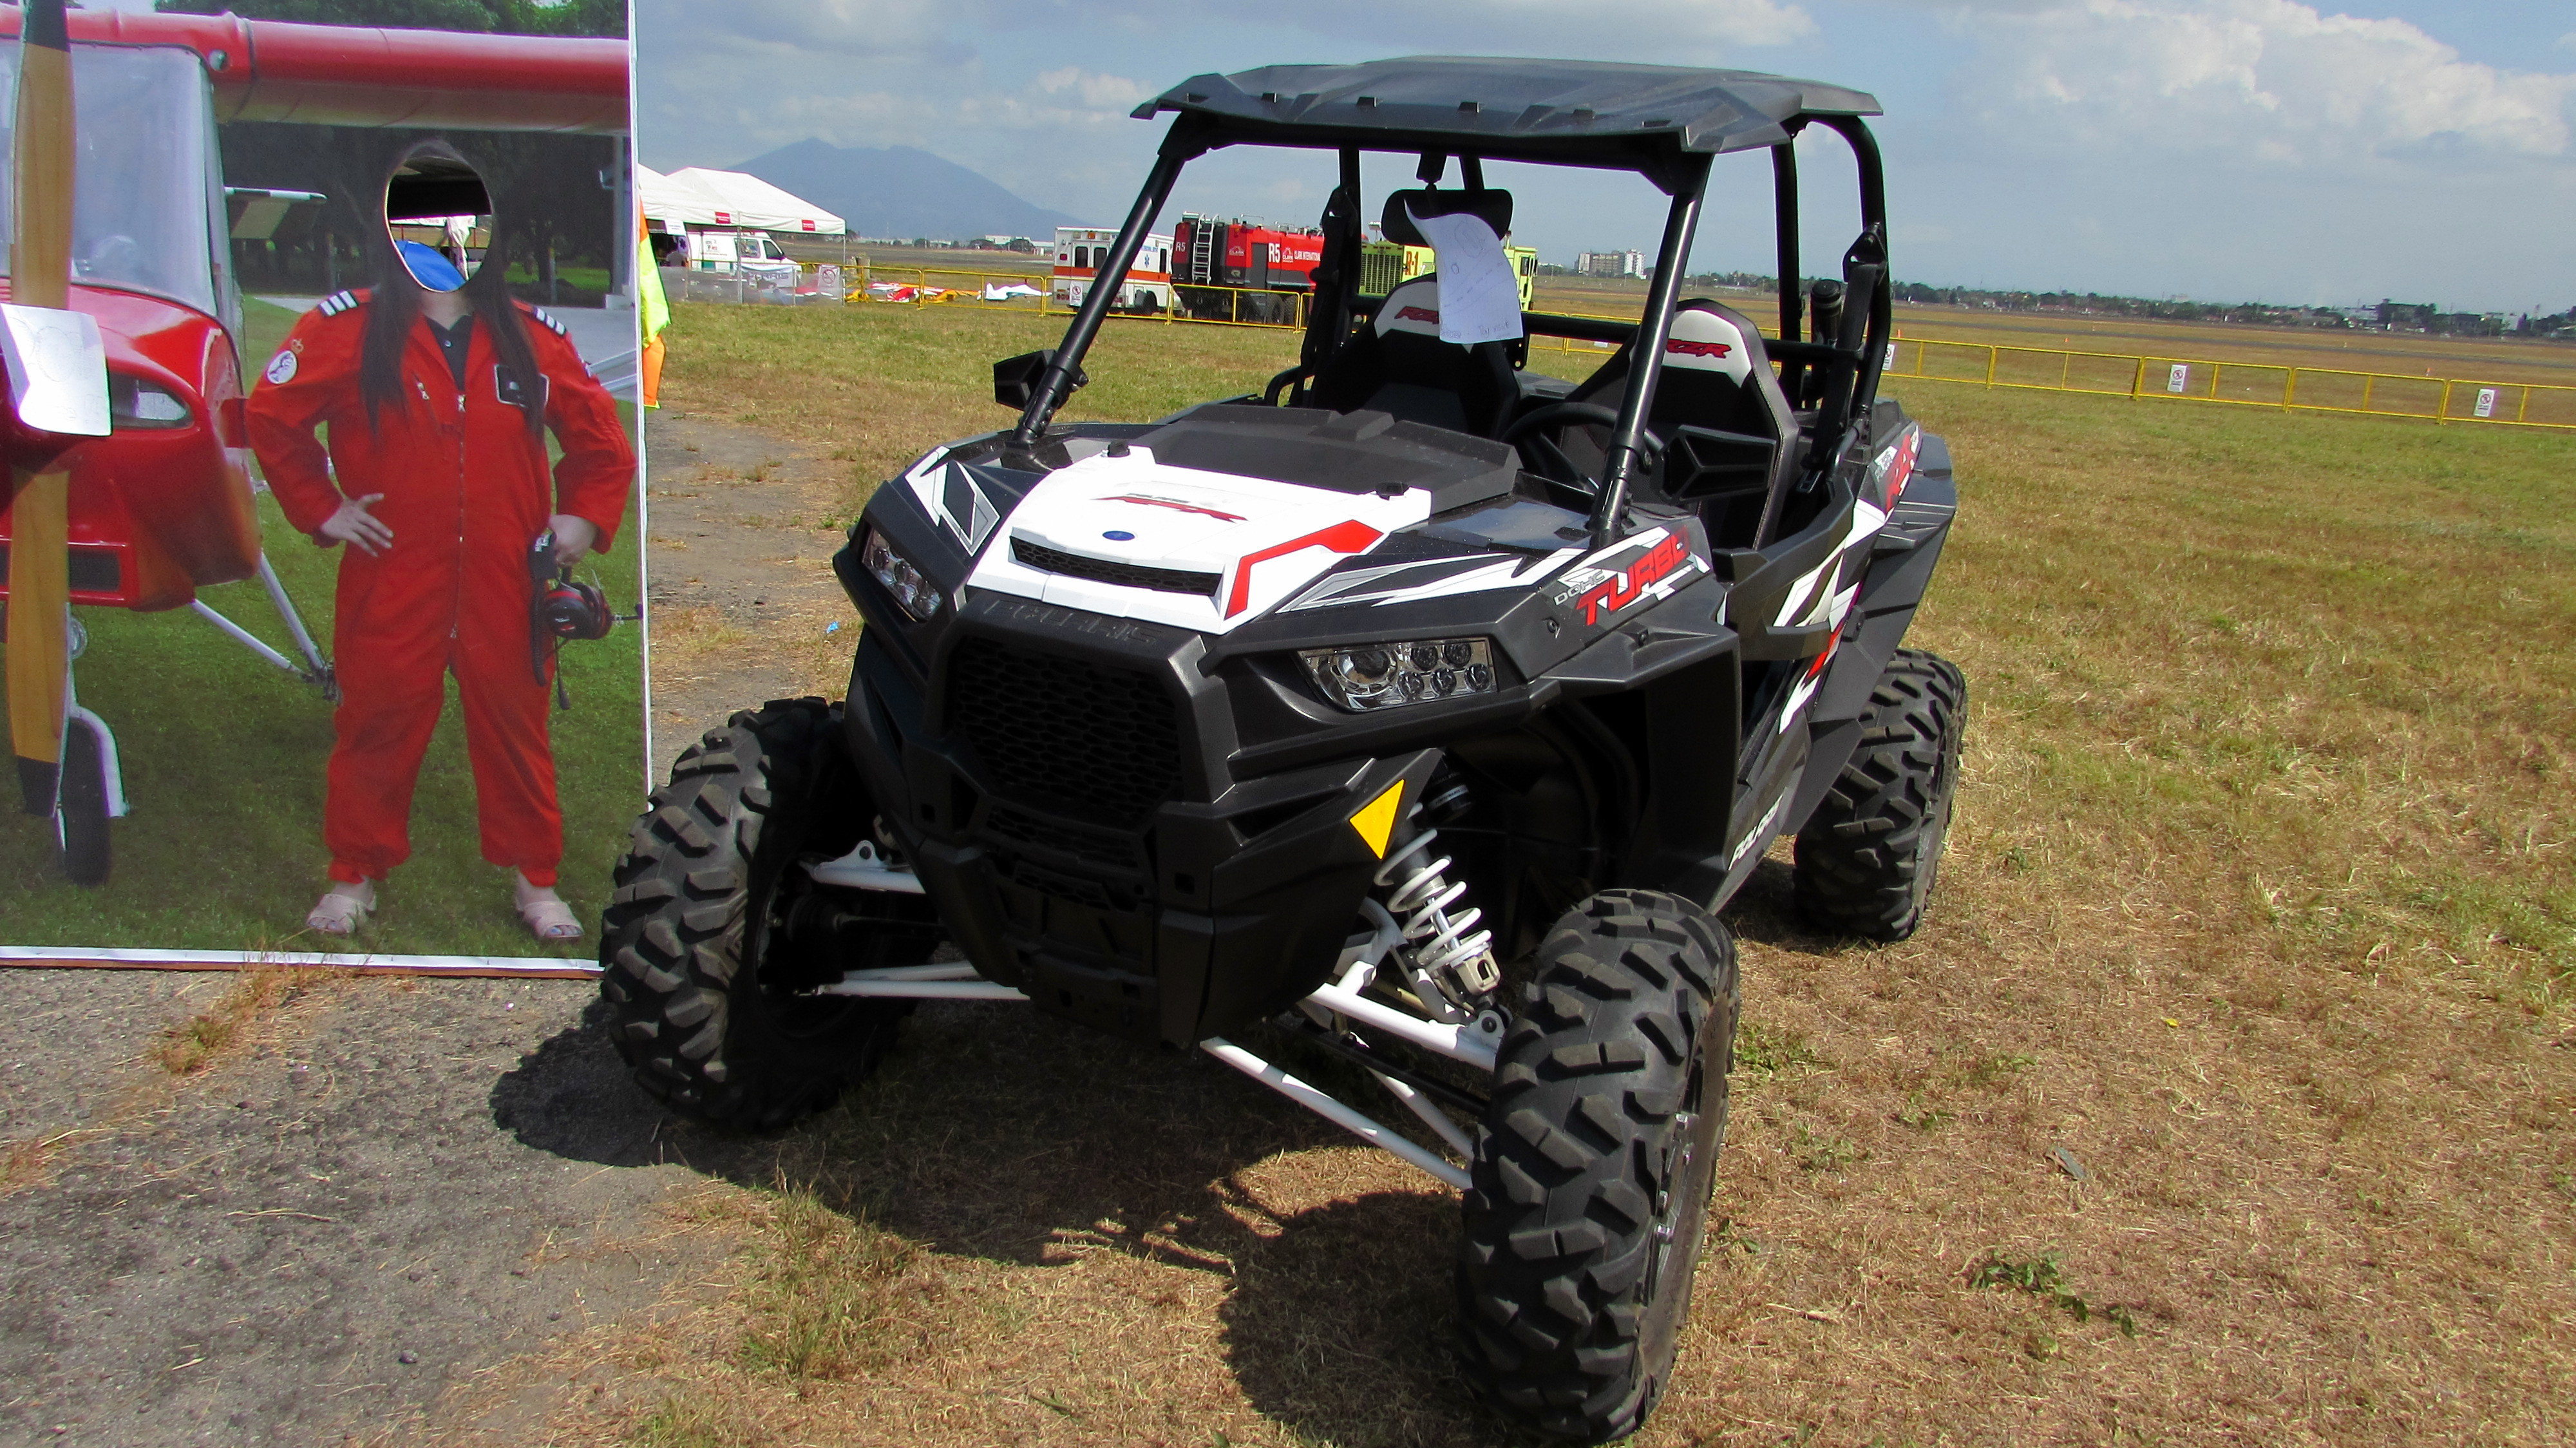 Photo of Polaris RZR XP 900 with Ball Joint Tool & aftermarket accessories Terrain Vehicle (ATV). Photo taken during the 20th Balloon Fiesta at Clark Air Field in Pampanga